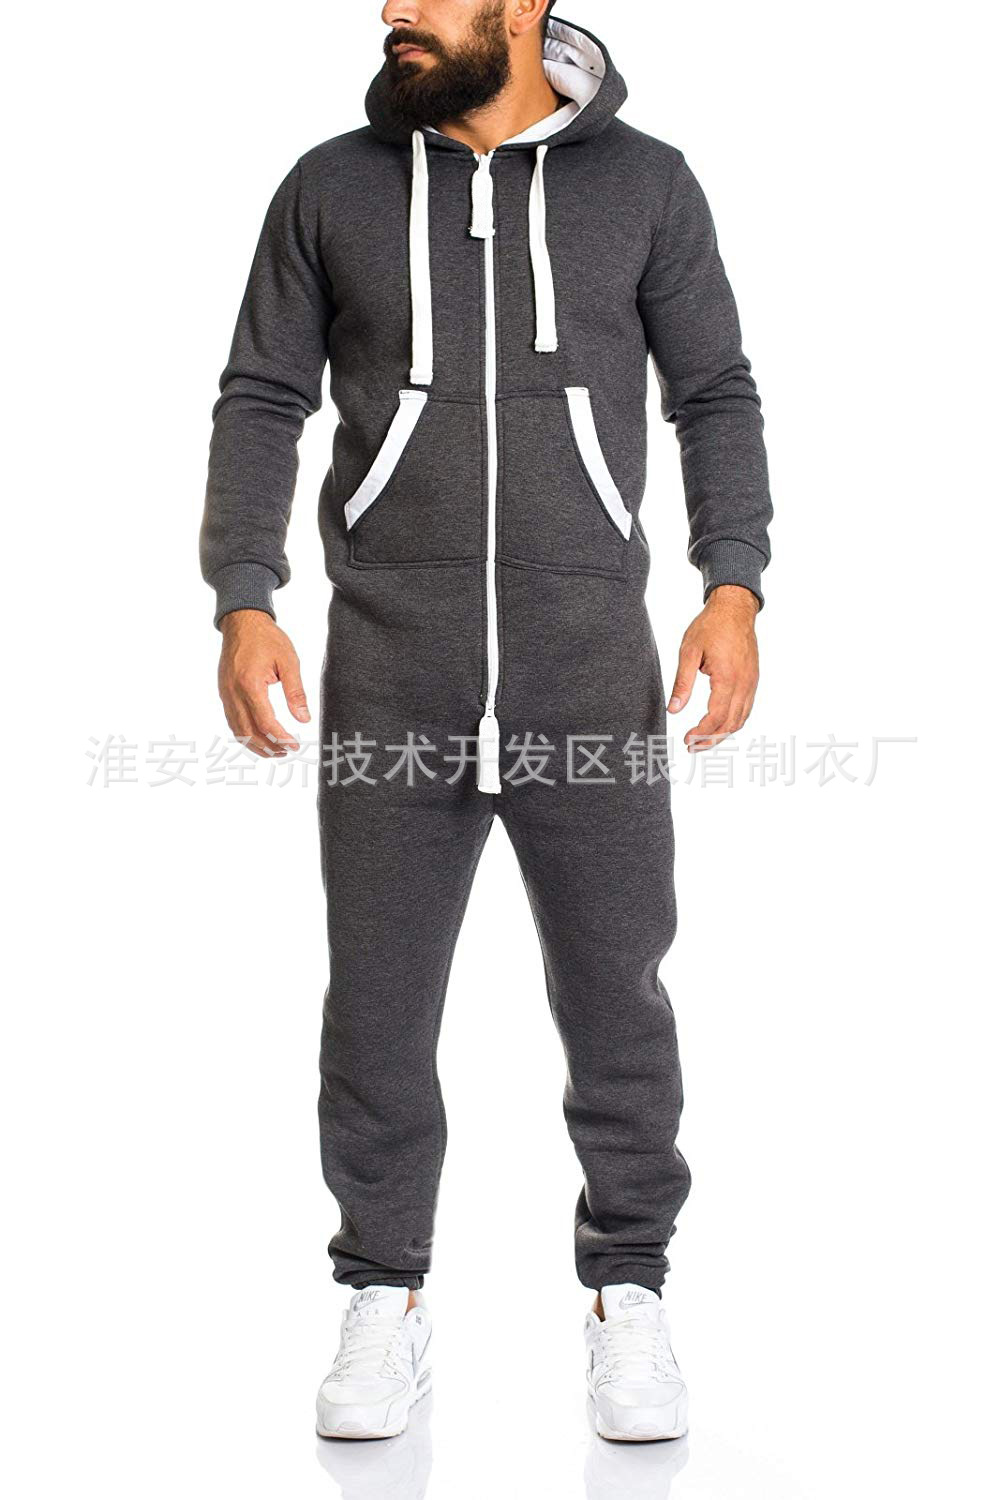 Hot Selling Men's Casual One-piece European And American Style Set Zipper Camouflage Tracksuit Men's